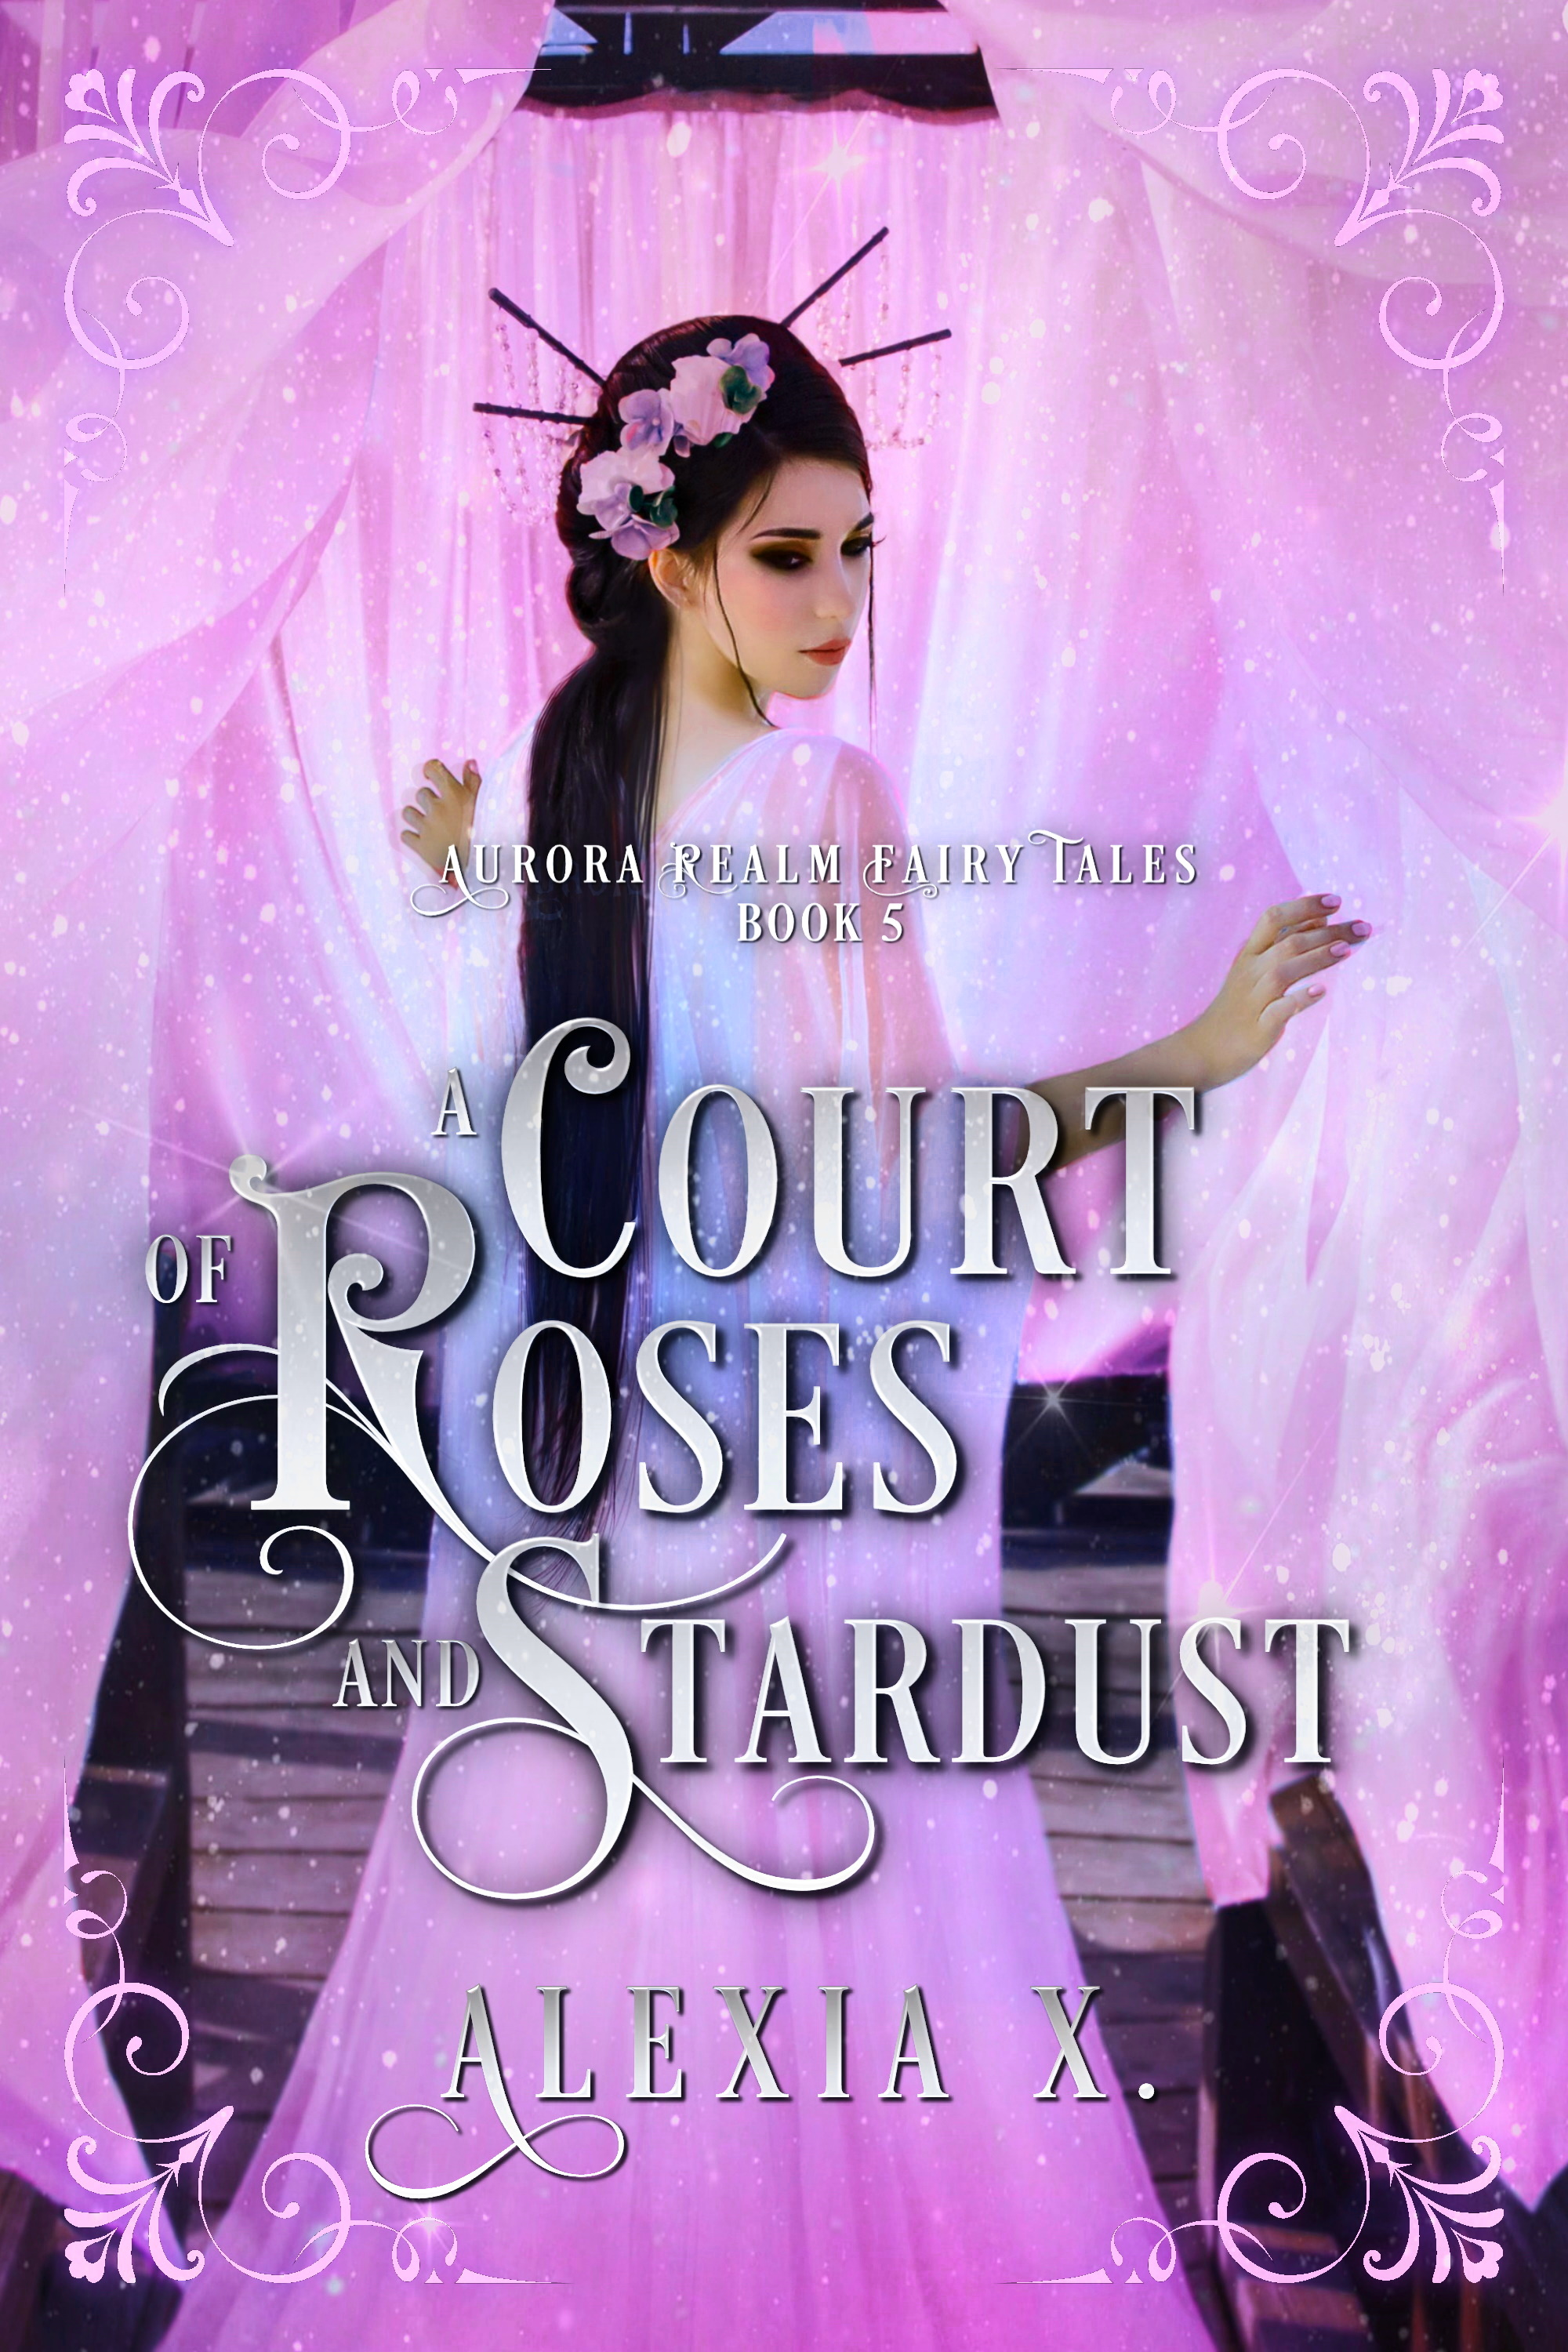 A Court of Roses and Stardust